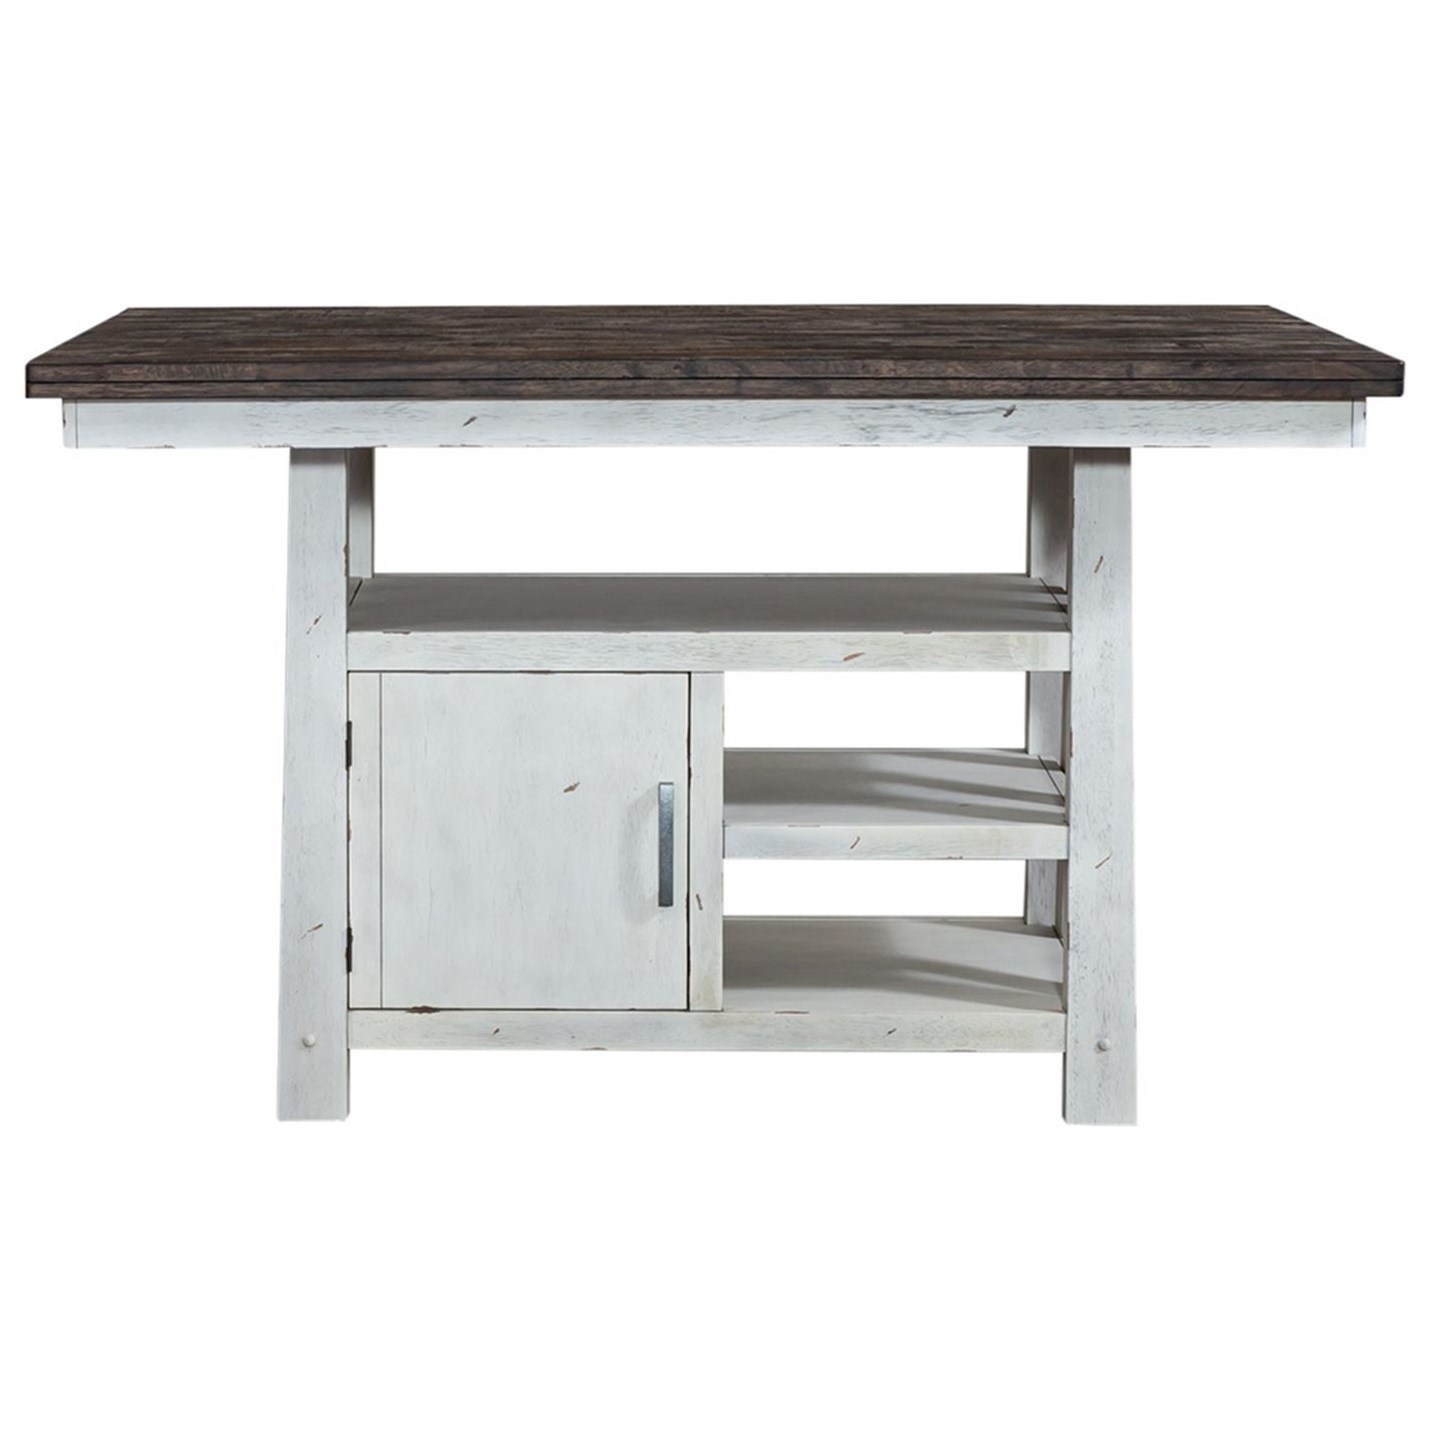 Farmhouse Center Island Table by Liberty Furniture at Standard Furniture